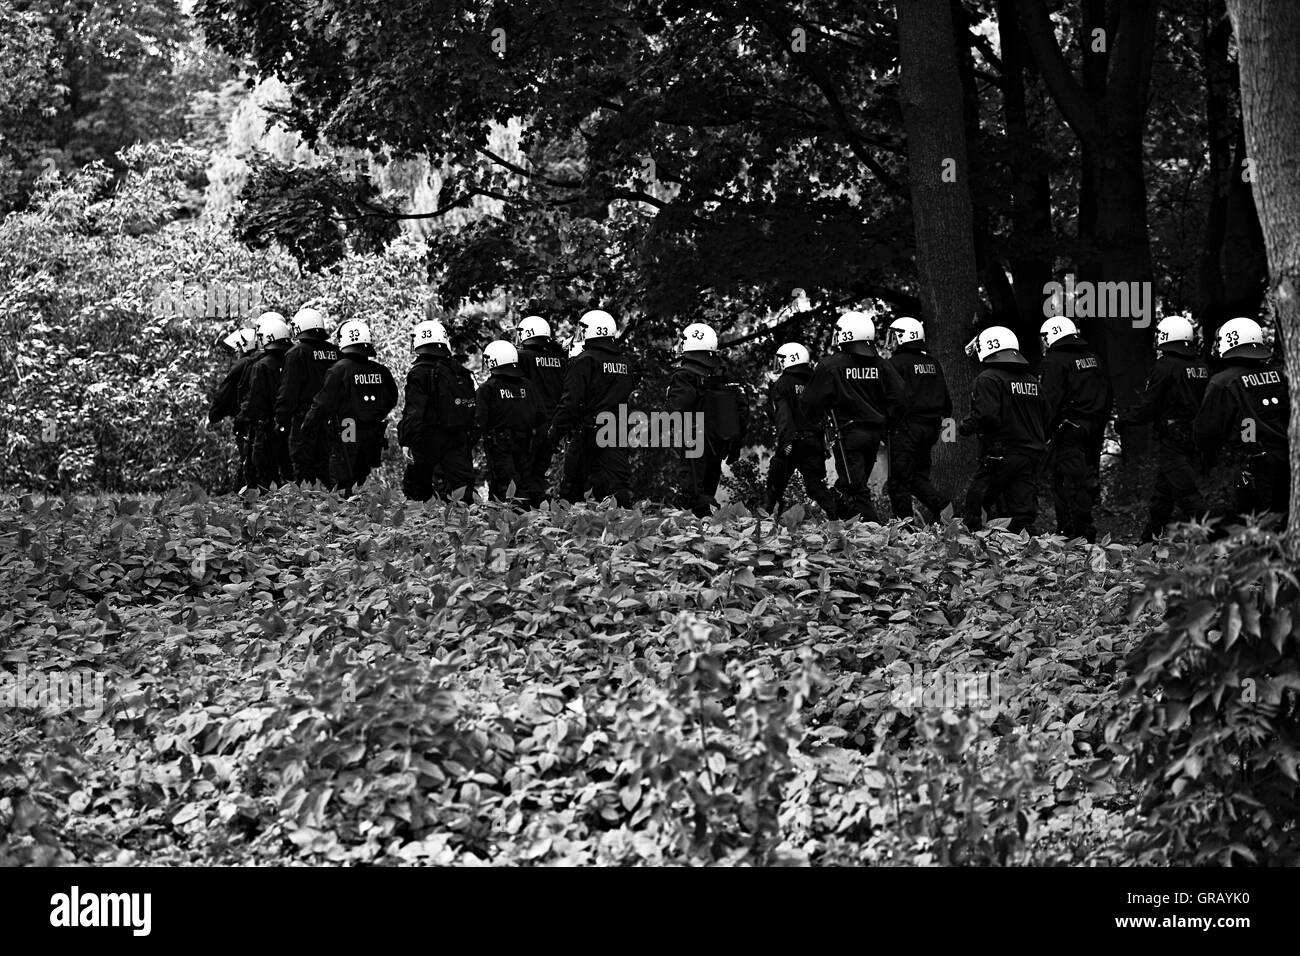 Police Force Walking By Plants And Trees - Stock Image